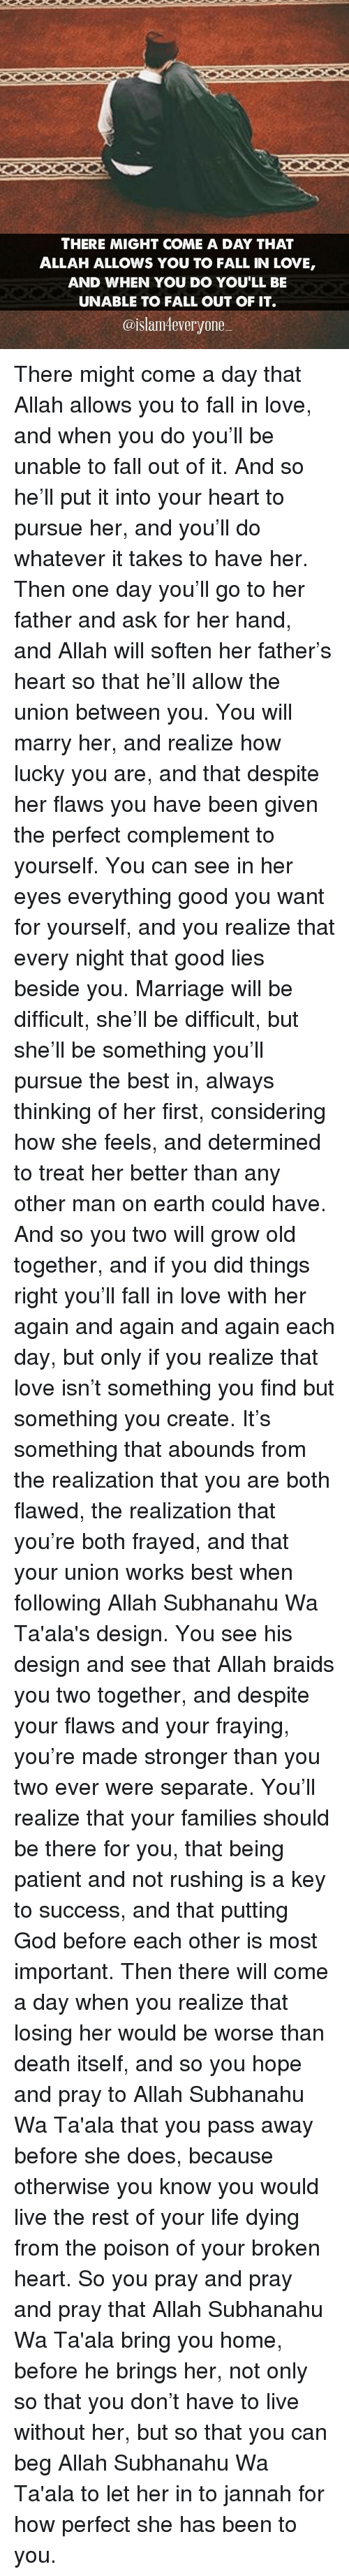 fray: THERE MIGHT COME A DAY THAT  ALLAH ALLOWS YOU TO FALL IN LOVE,  AND WHEN YOU DO YOULL BE  UNABLE TO FALL OUT OF IT.  @islam 4everyone There might come a day that Allah allows you to fall in love, and when you do you'll be unable to fall out of it. And so he'll put it into your heart to pursue her, and you'll do whatever it takes to have her. Then one day you'll go to her father and ask for her hand, and Allah will soften her father's heart so that he'll allow the union between you. You will marry her, and realize how lucky you are, and that despite her flaws you have been given the perfect complement to yourself. You can see in her eyes everything good you want for yourself, and you realize that every night that good lies beside you. Marriage will be difficult, she'll be difficult, but she'll be something you'll pursue the best in, always thinking of her first, considering how she feels, and determined to treat her better than any other man on earth could have. And so you two will grow old together, and if you did things right you'll fall in love with her again and again and again each day, but only if you realize that love isn't something you find but something you create. It's something that abounds from the realization that you are both flawed, the realization that you're both frayed, and that your union works best when following Allah Subhanahu Wa Ta'ala's design. You see his design and see that Allah braids you two together, and despite your flaws and your fraying, you're made stronger than you two ever were separate. You'll realize that your families should be there for you, that being patient and not rushing is a key to success, and that putting God before each other is most important. Then there will come a day when you realize that losing her would be worse than death itself, and so you hope and pray to Allah Subhanahu Wa Ta'ala that you pass away before she does, because otherwise you know you would live the rest of your life dying from the poison of